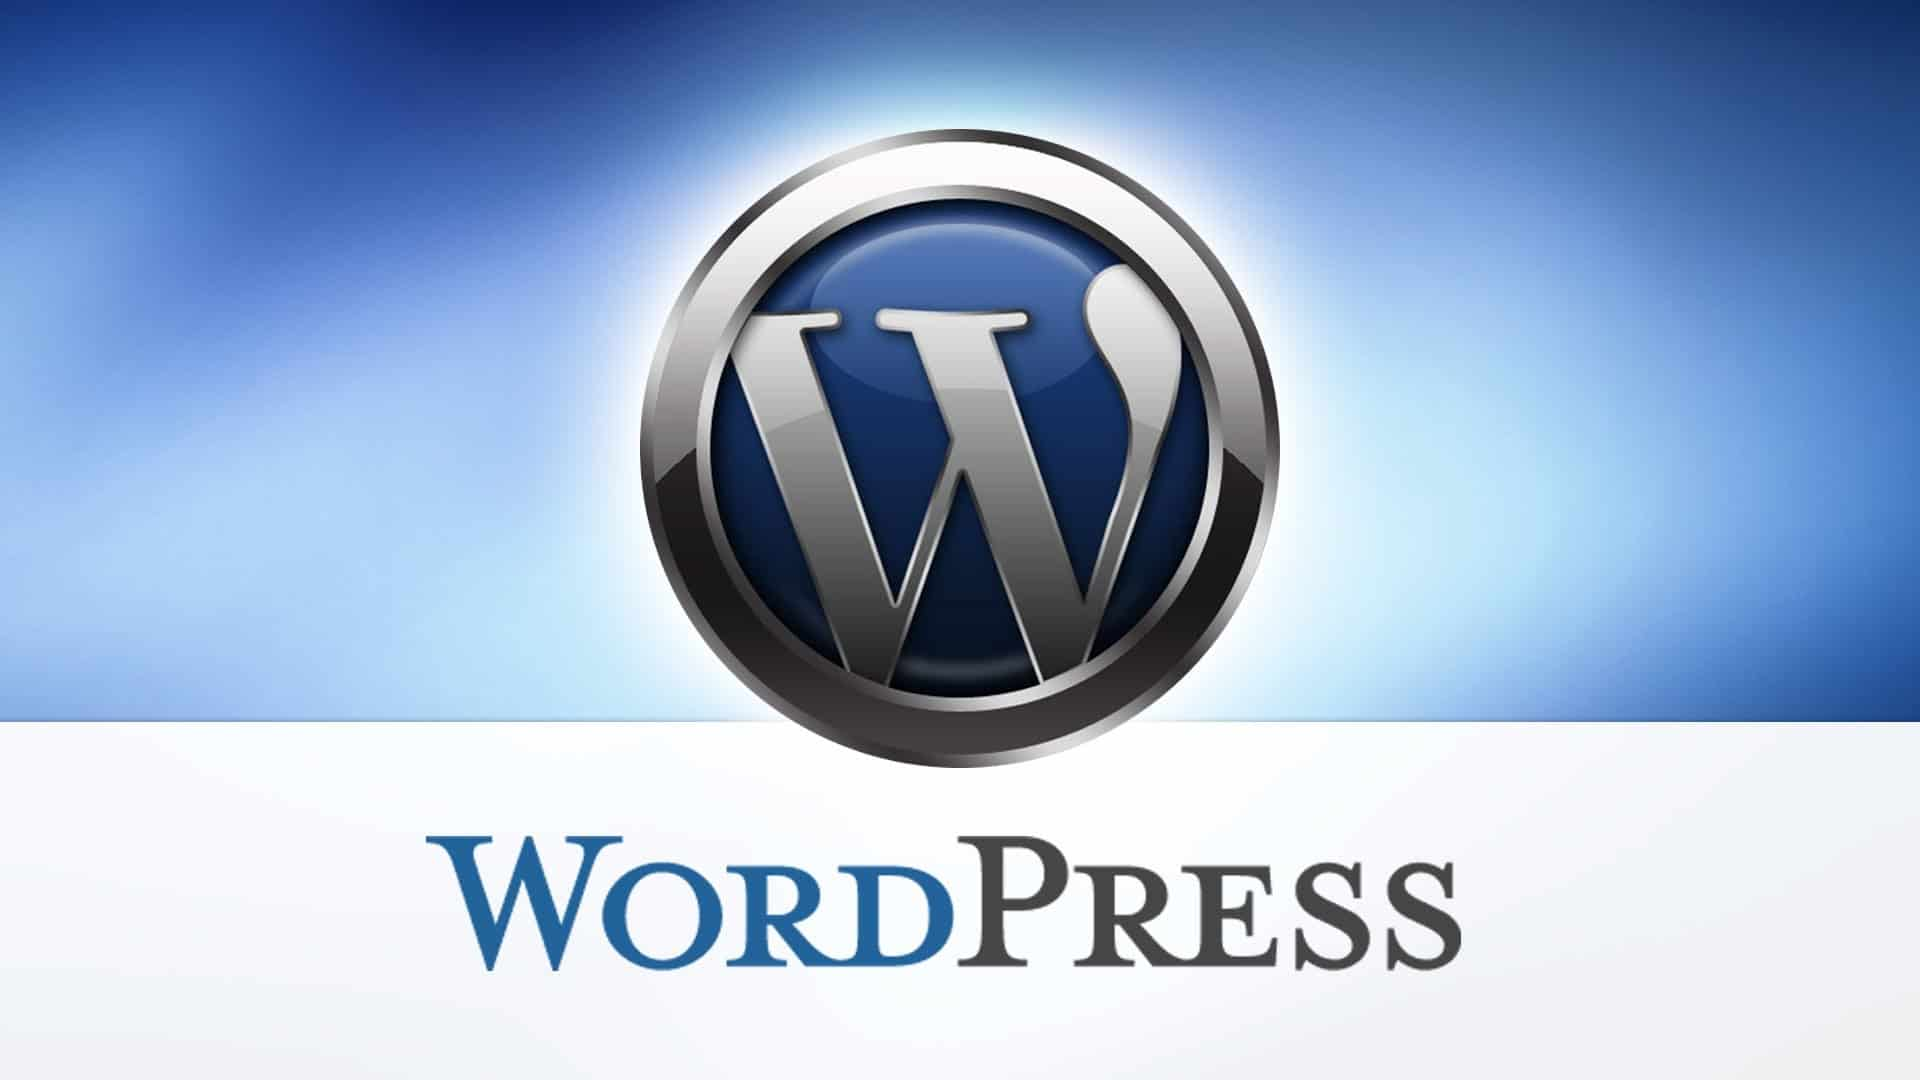 ESPECIAL WORDPRESS